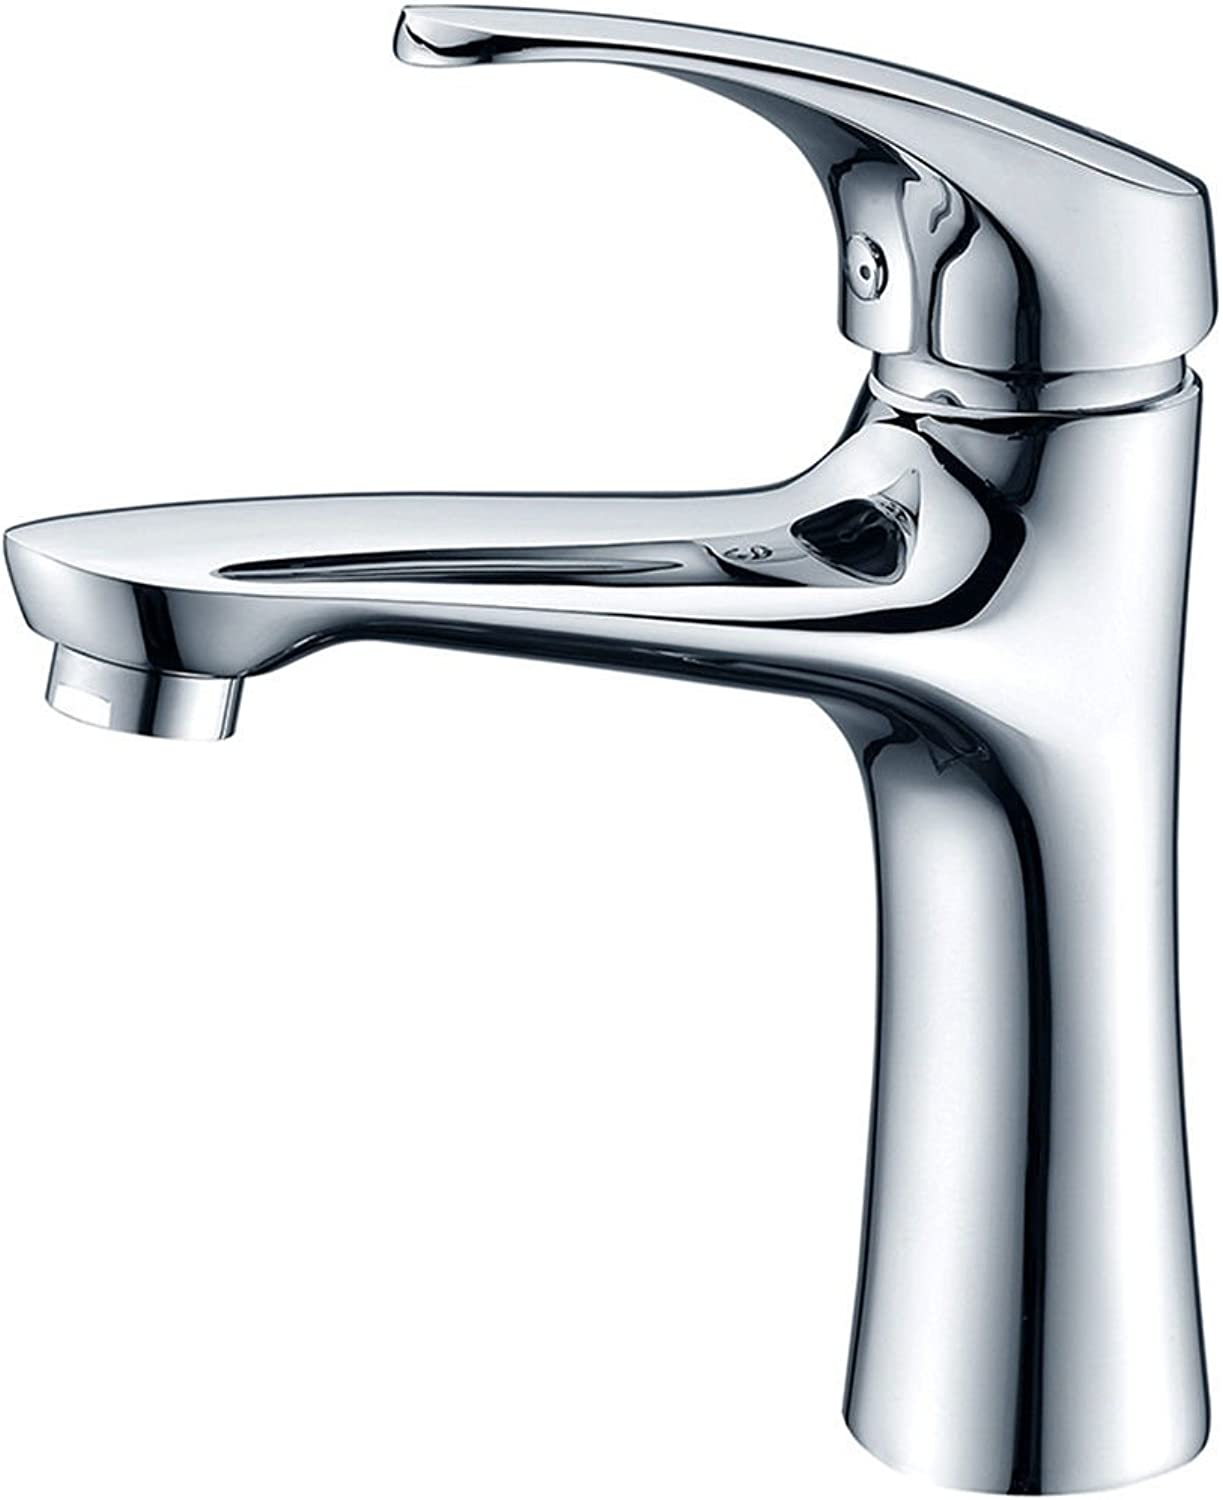 LHbox Basin Mixer Tap Bathroom Sink Faucet Basin-copper cold water washing basin water mouth wash basins taps the c